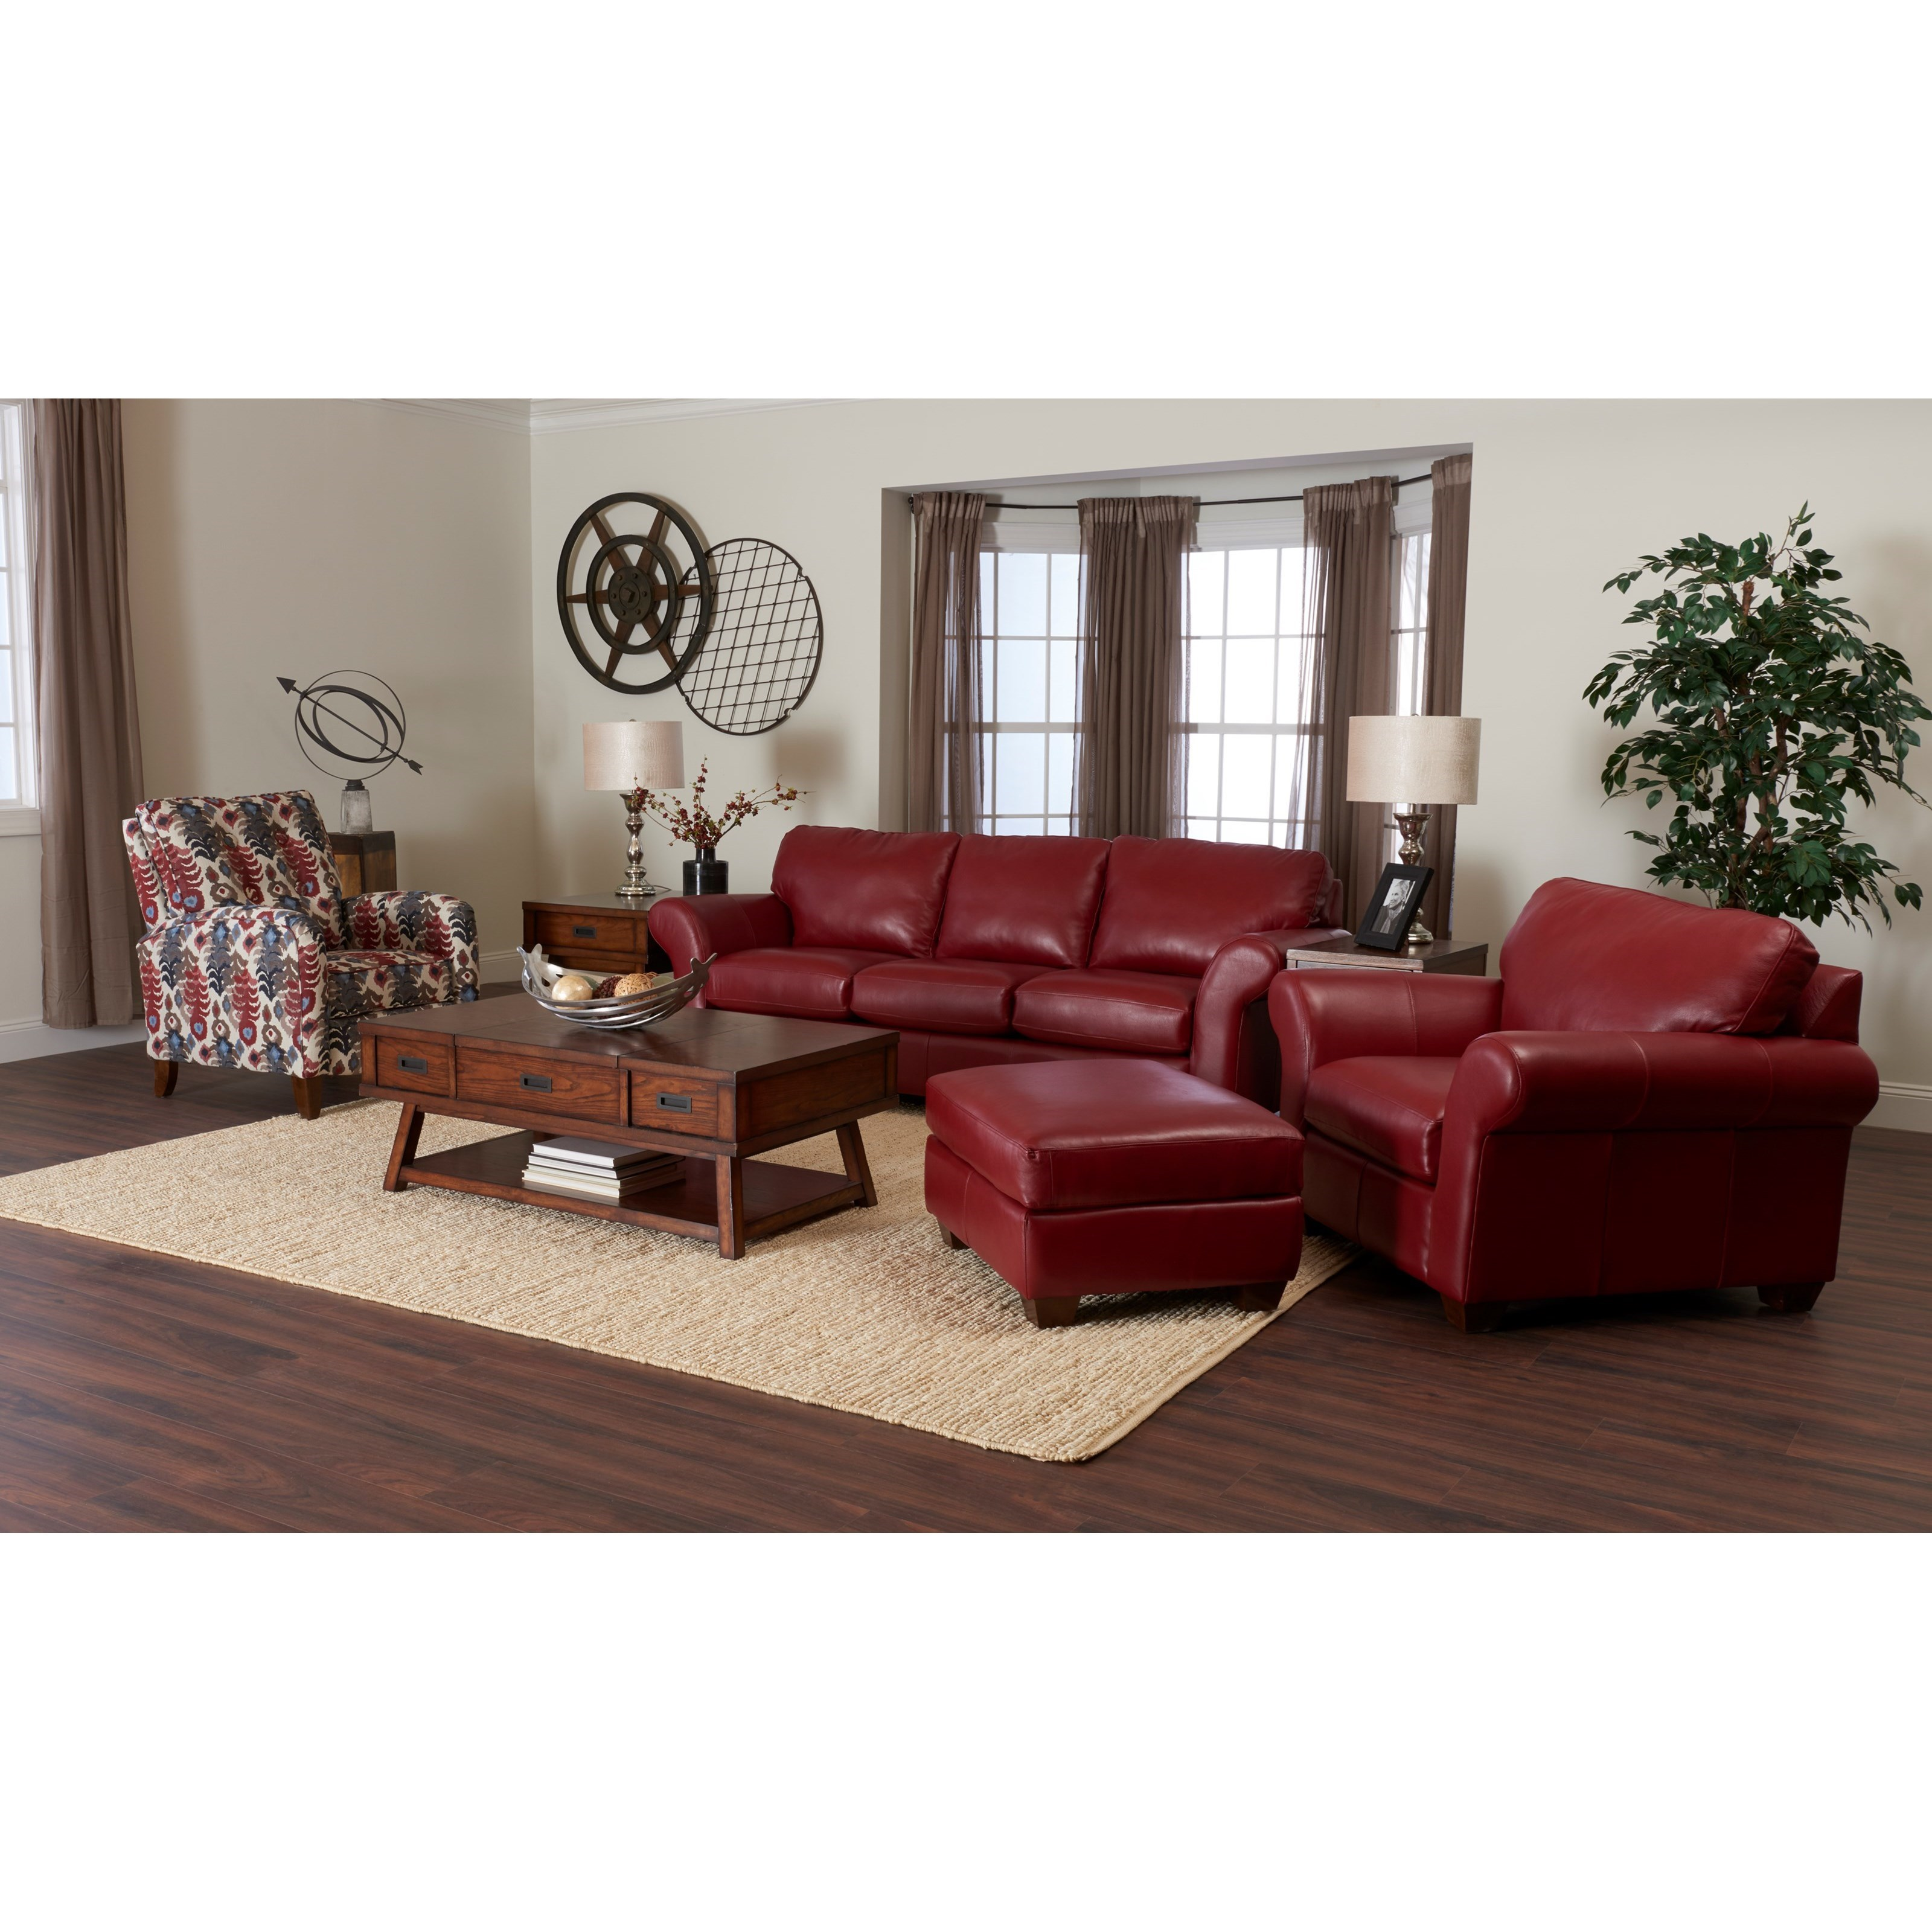 Klaussner Moorland Casual Leather Sofa Value City